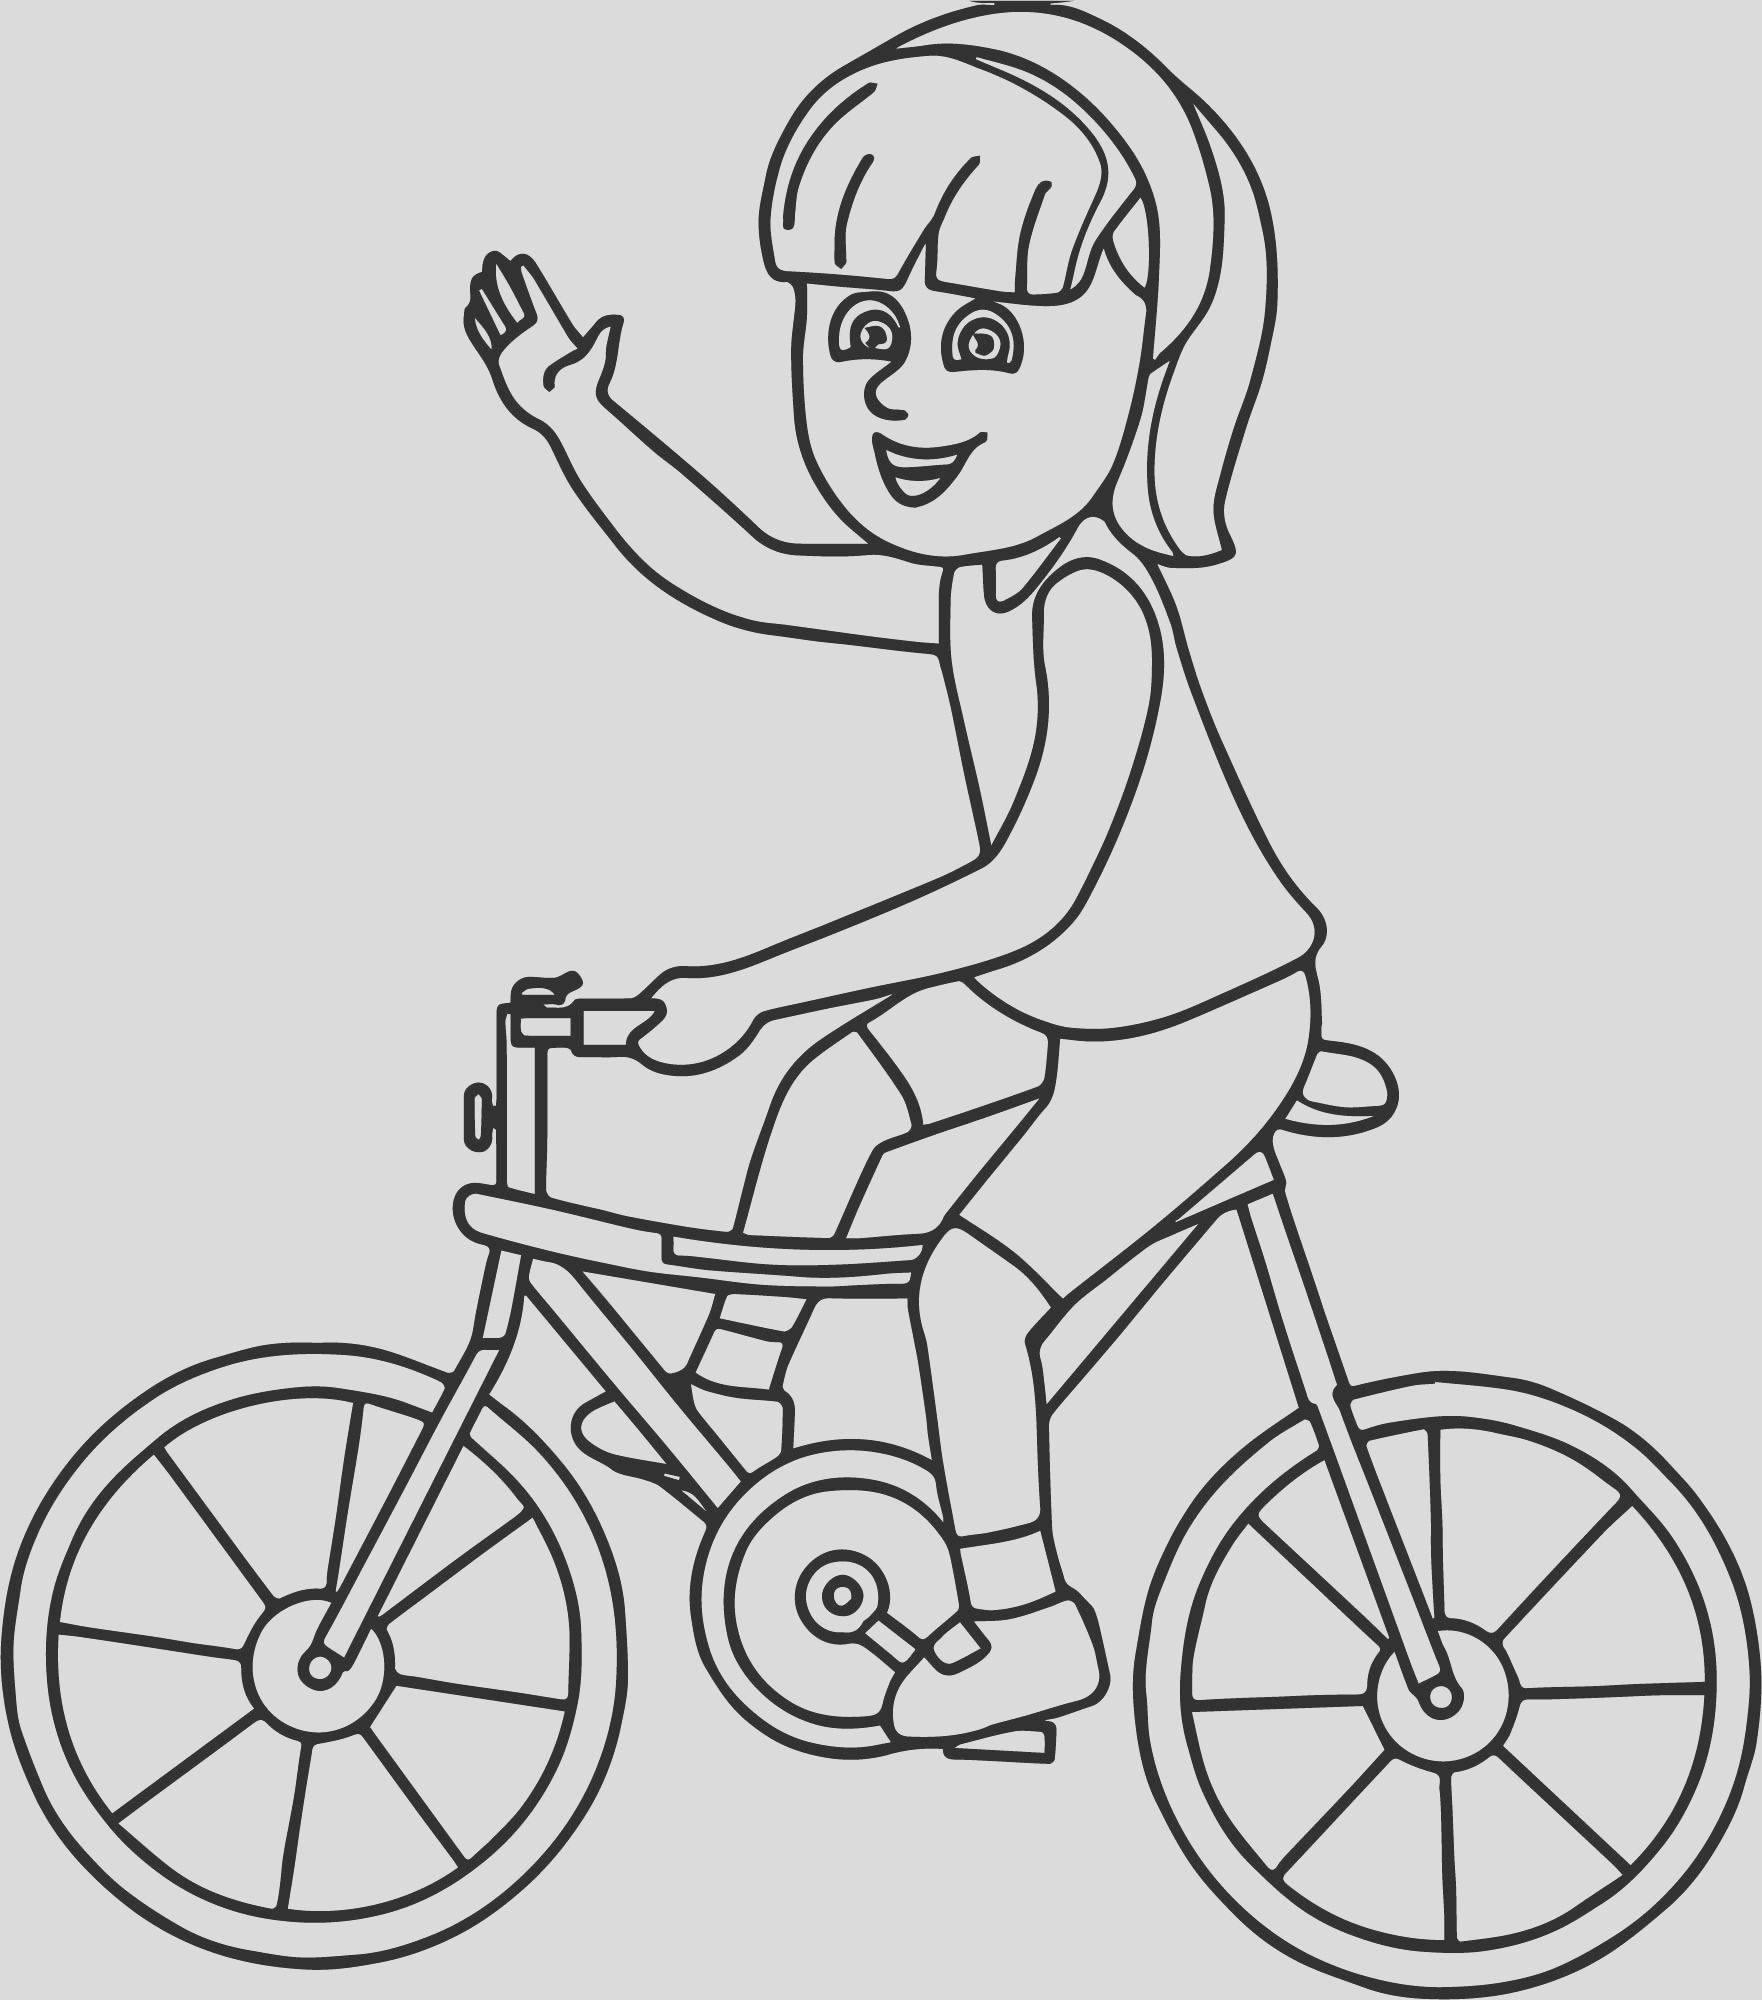 riding girl bicycle coloring page